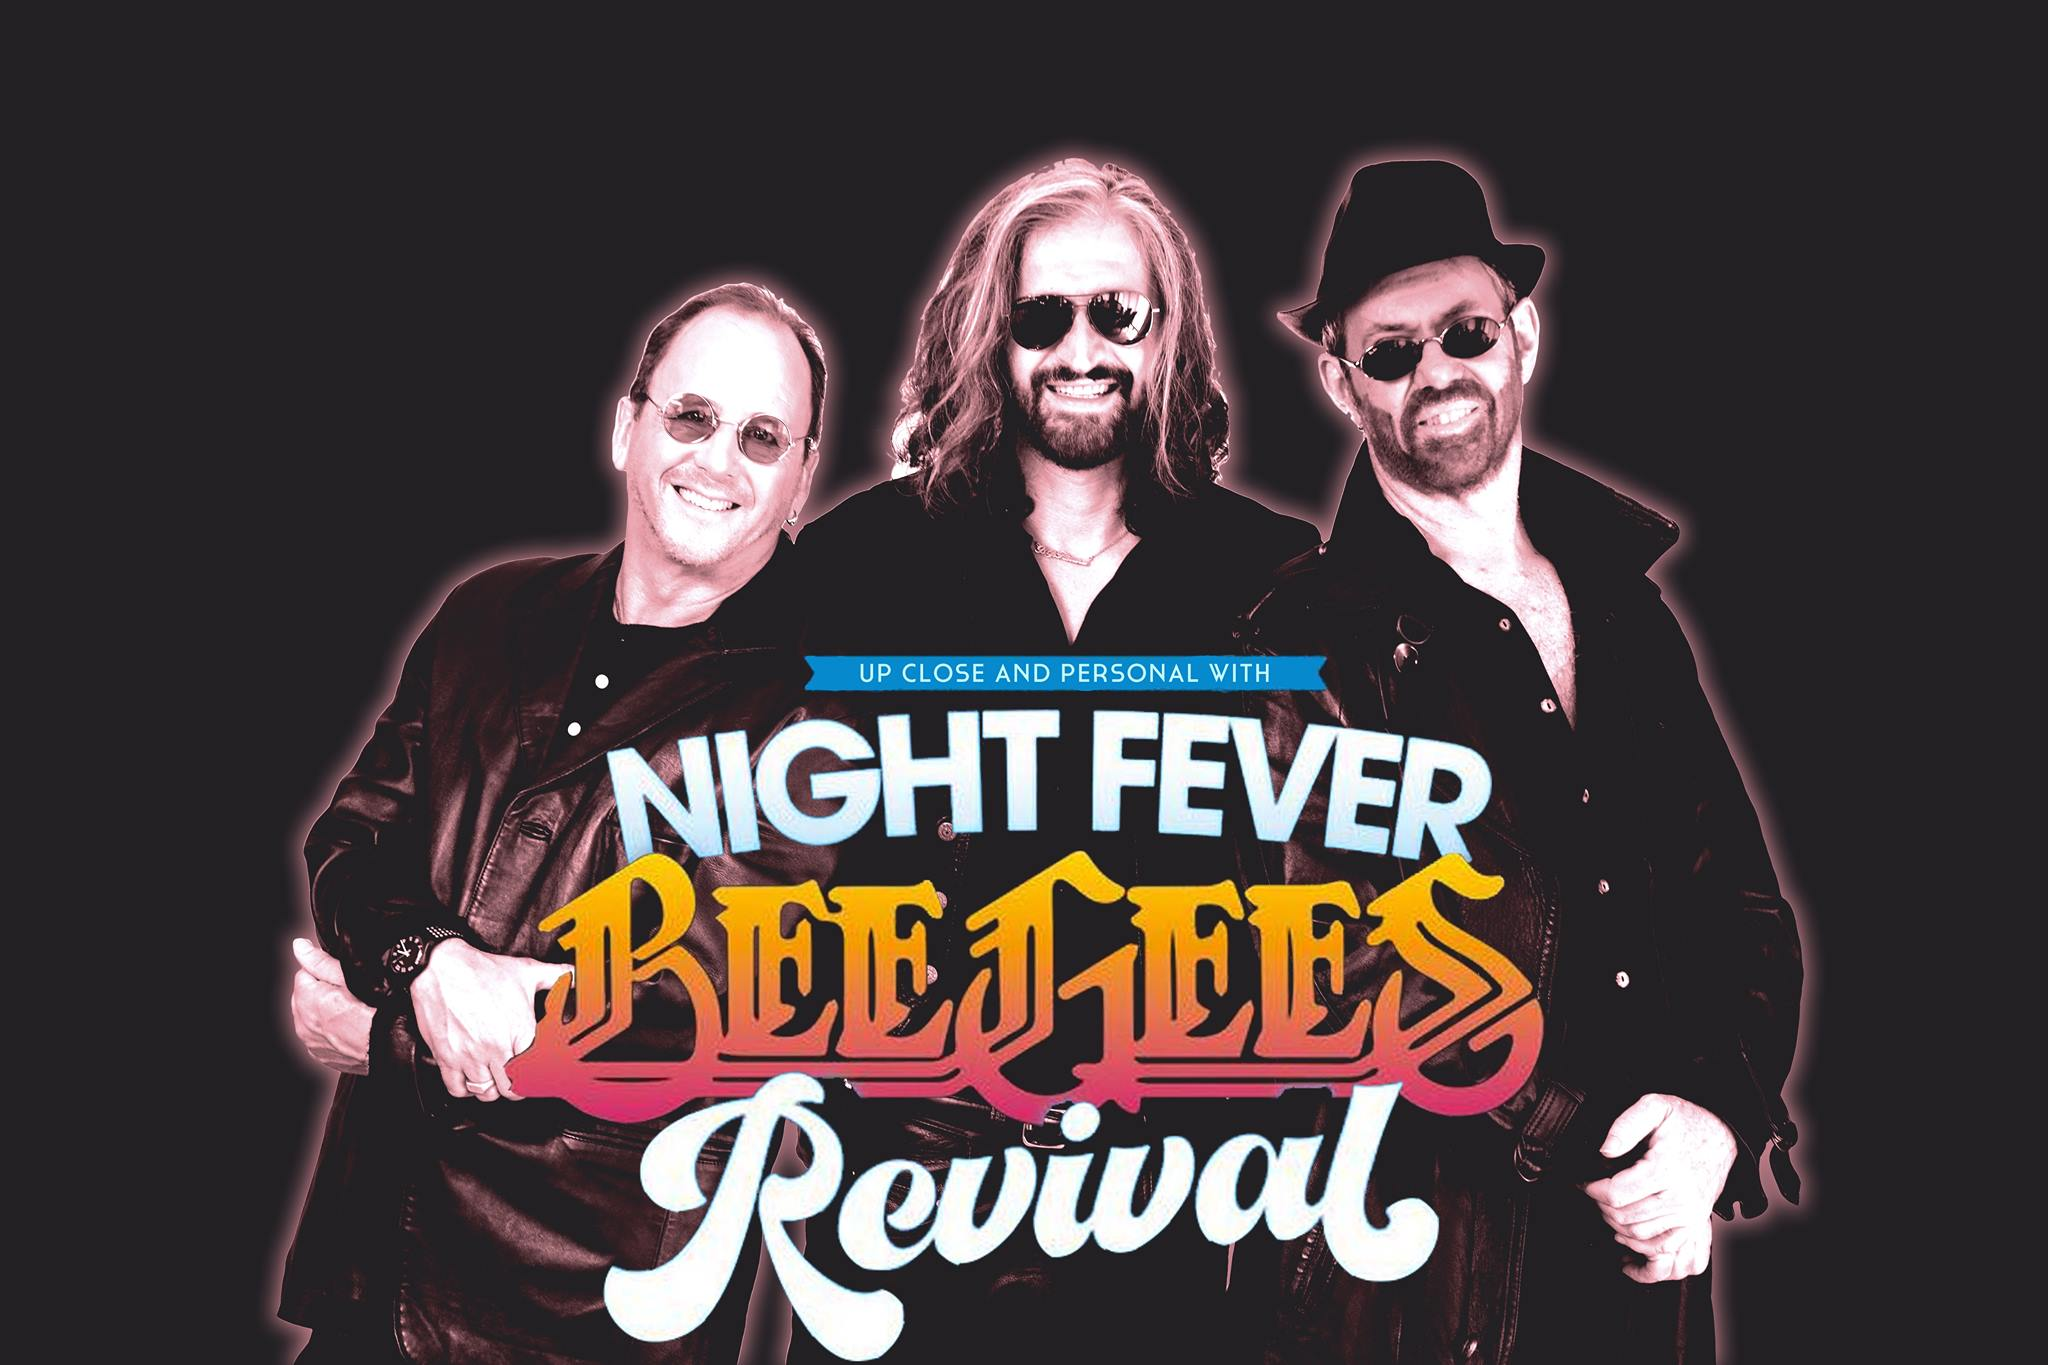 BeeGees Revival @ Lizotte's